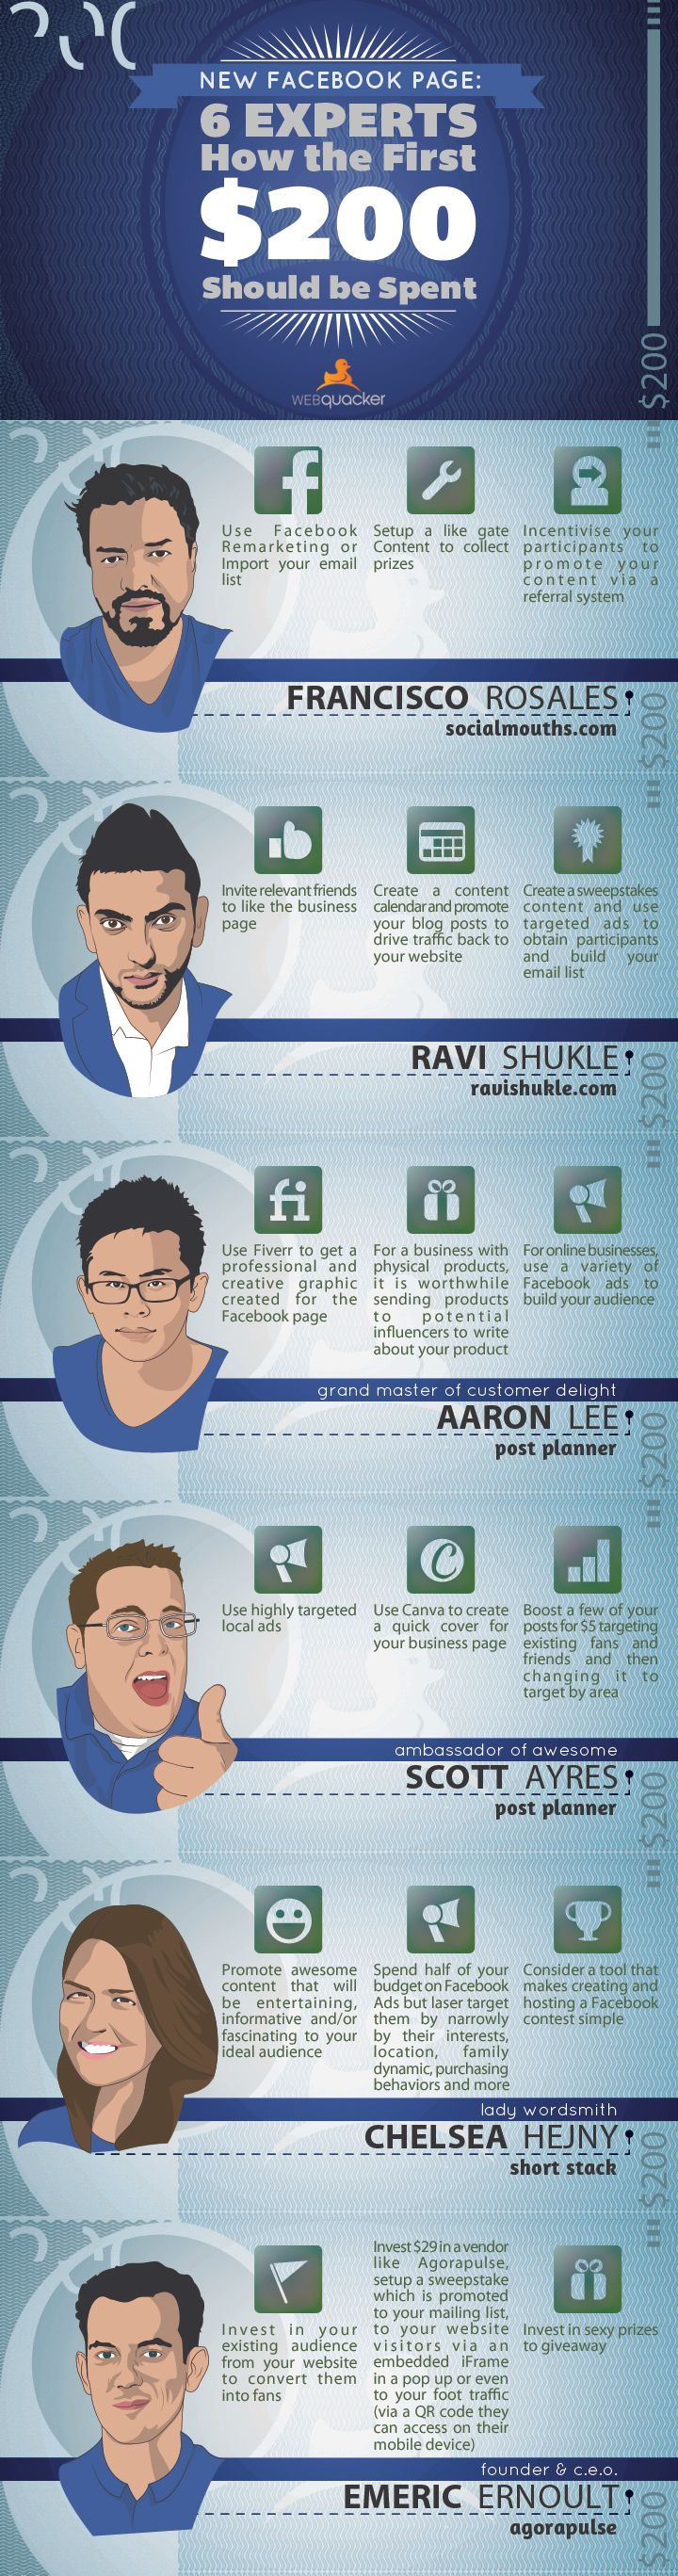 6 Facebook Experts Tell You How You Should Spend the First $200 [#Infographic] #Facebook #SocialMedia